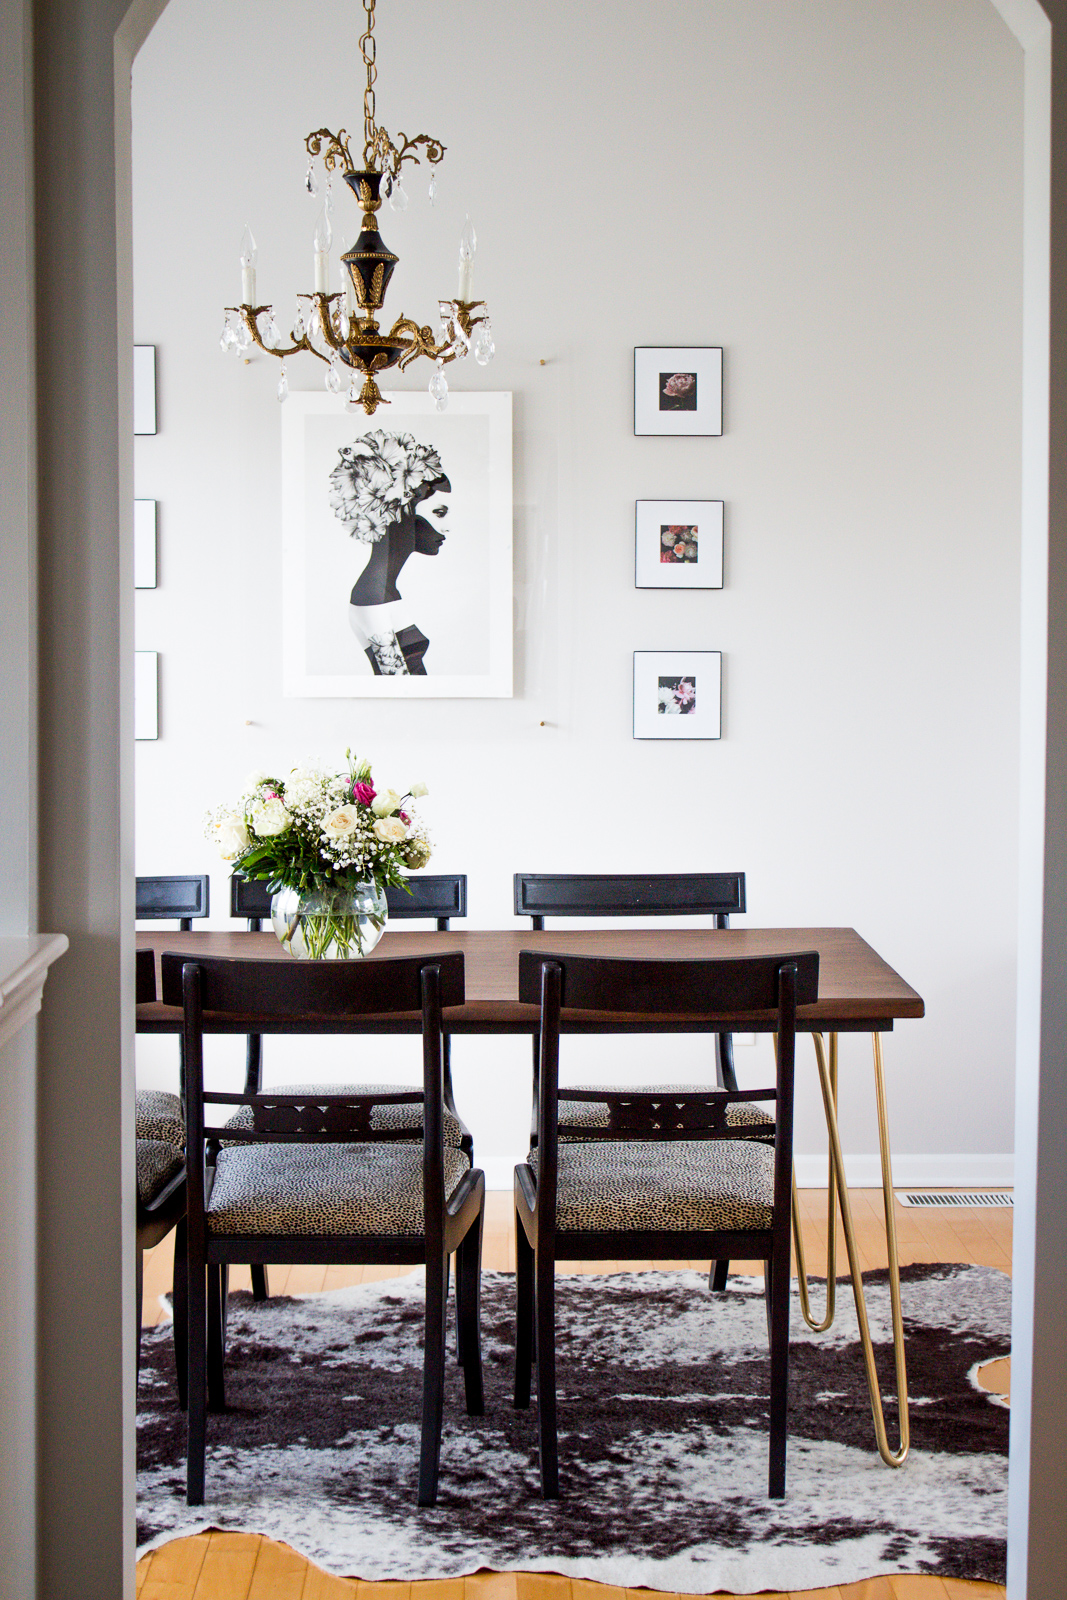 a budget friendly dining room makeover with a chic bohemian glam vibe with lots of DIY's